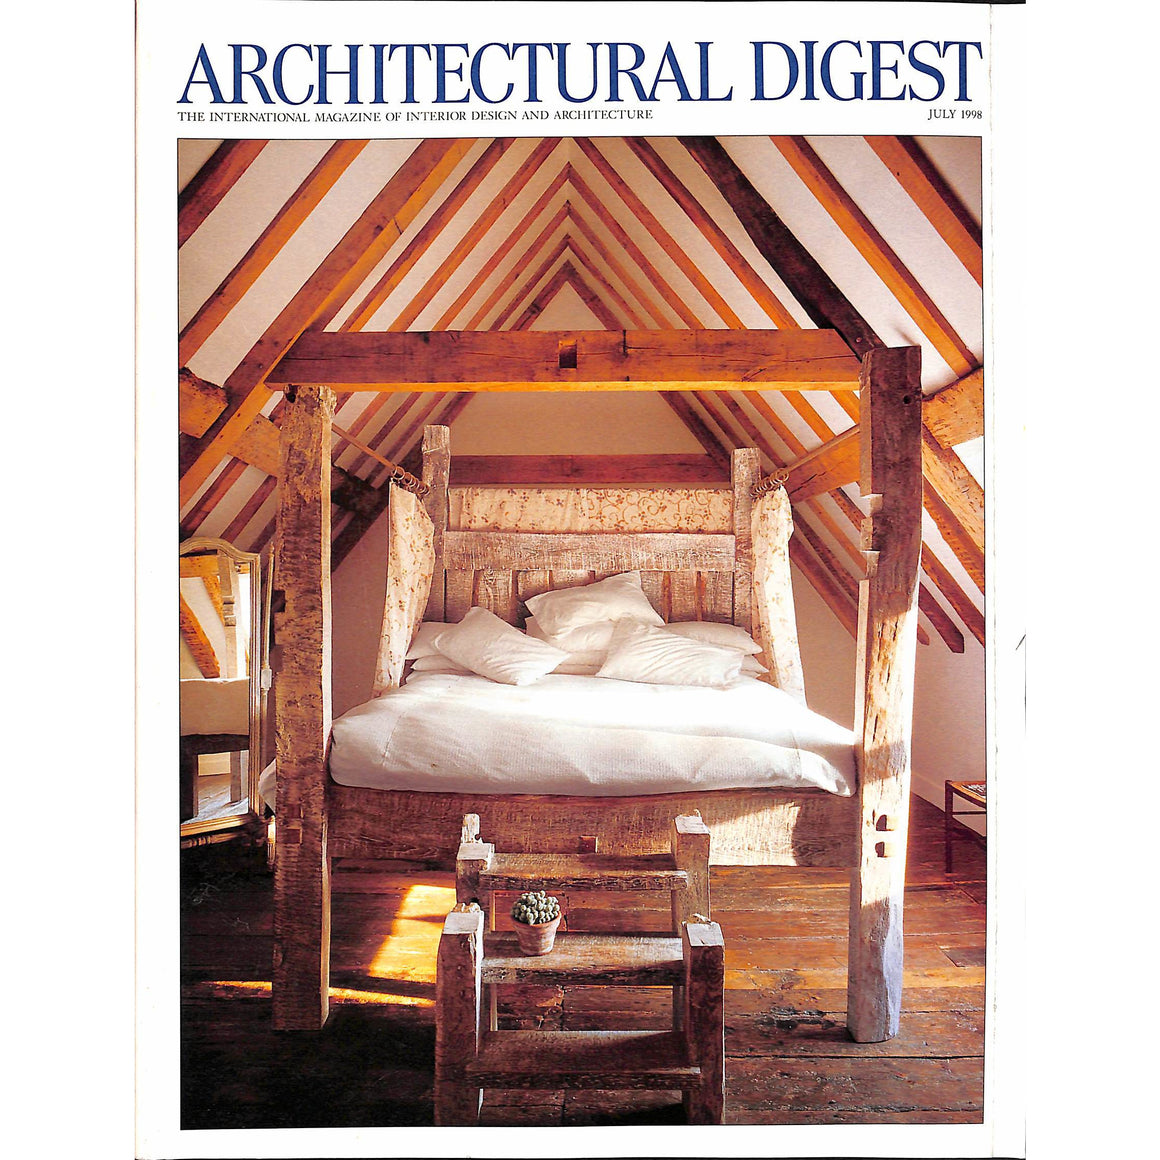 Architectural Digest July 1998